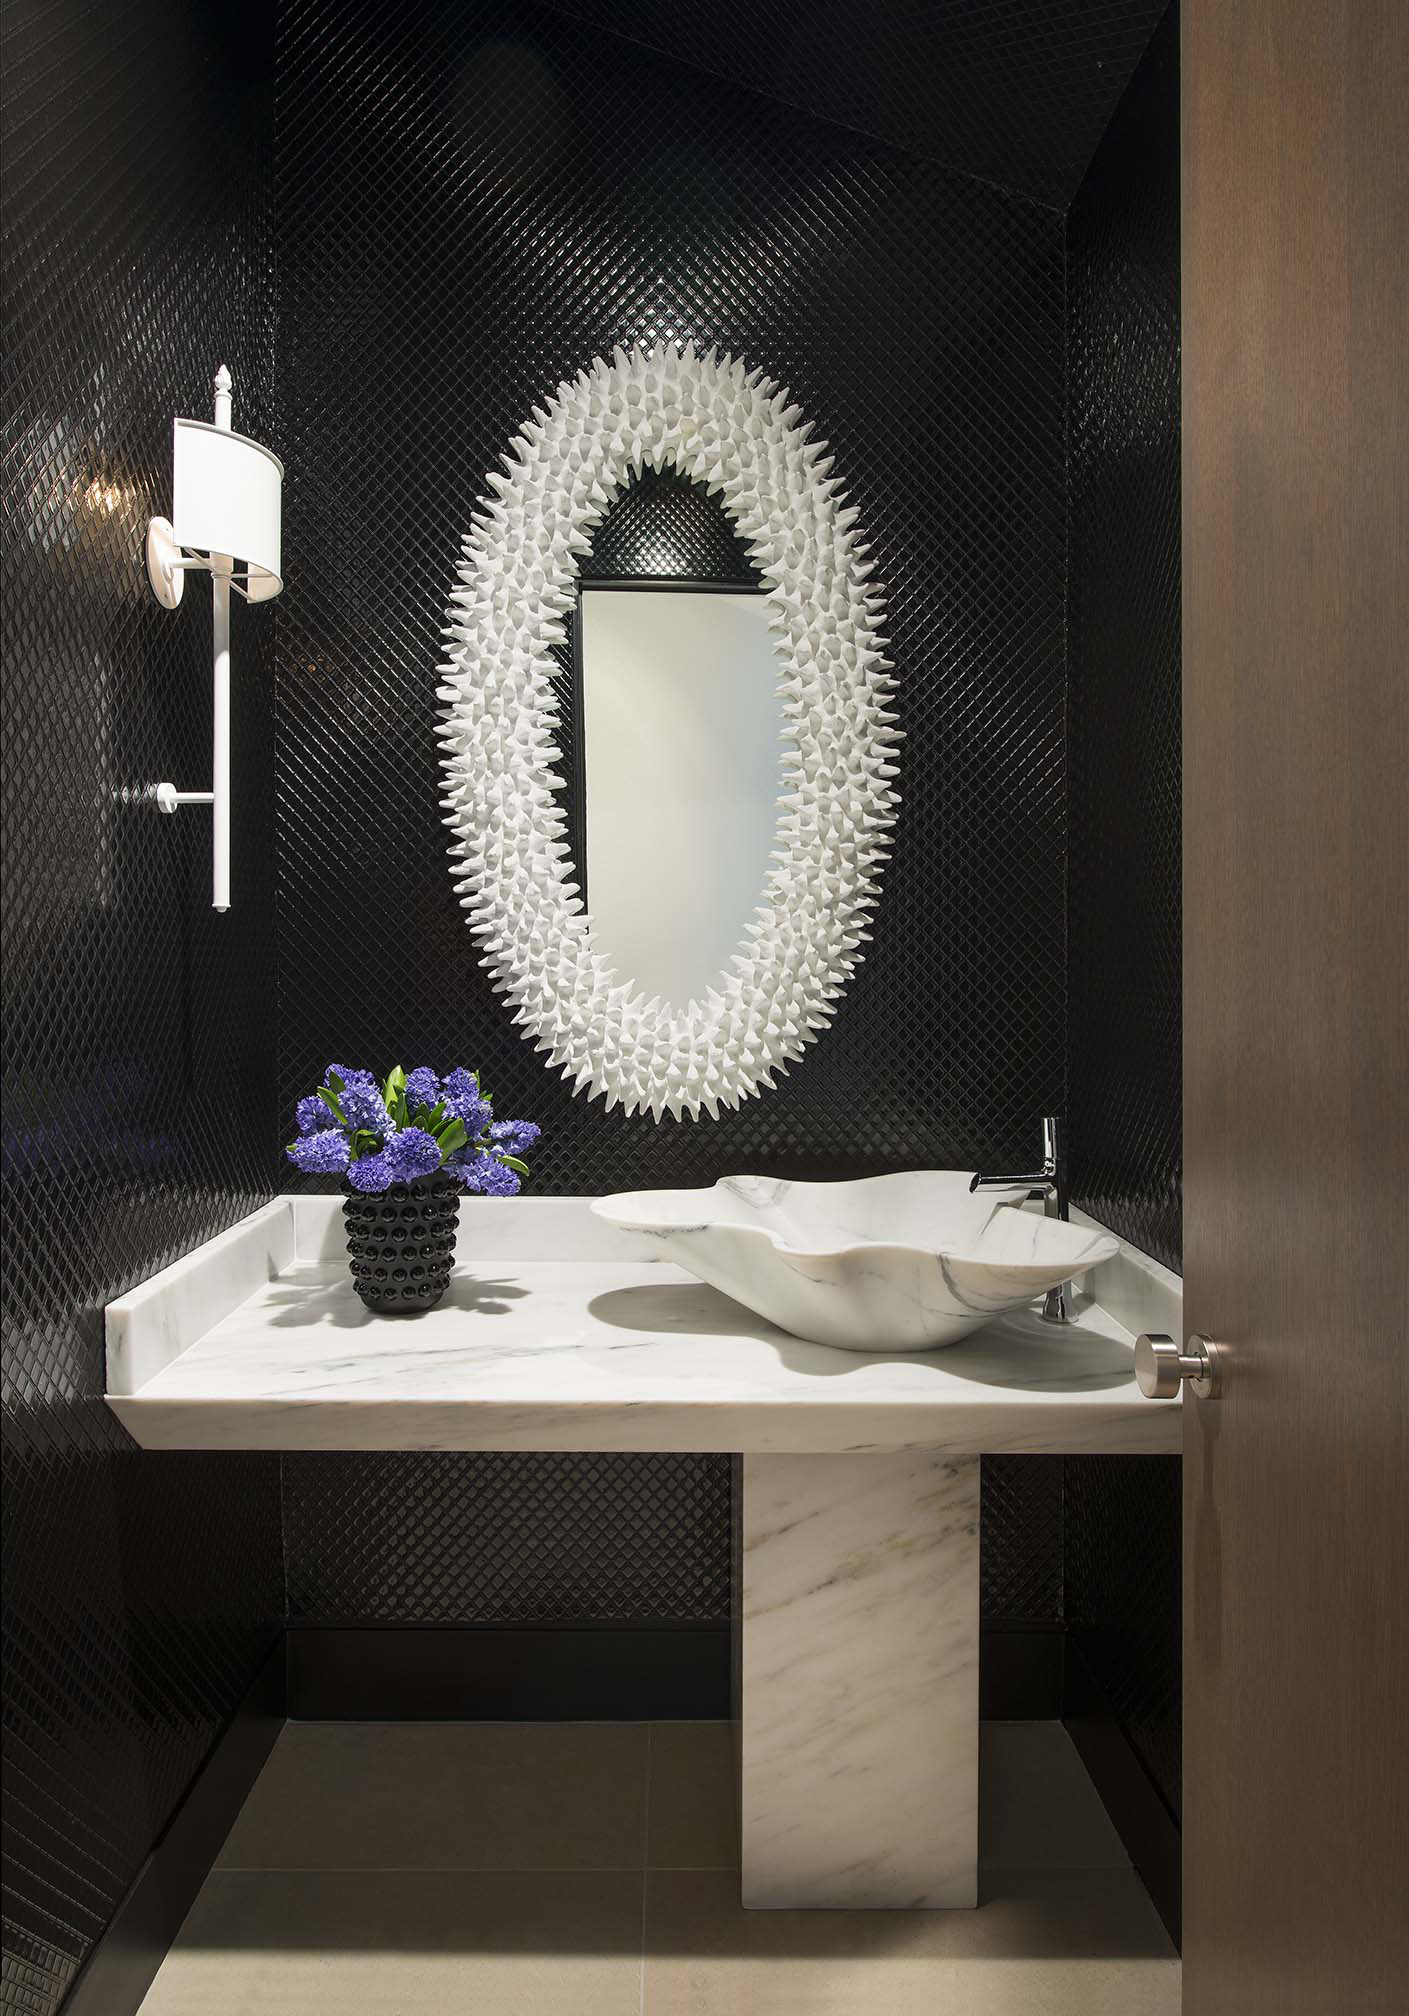 9 Bathrooms And Powder Rooms With Unique Vessel Sinks Chairish Blog